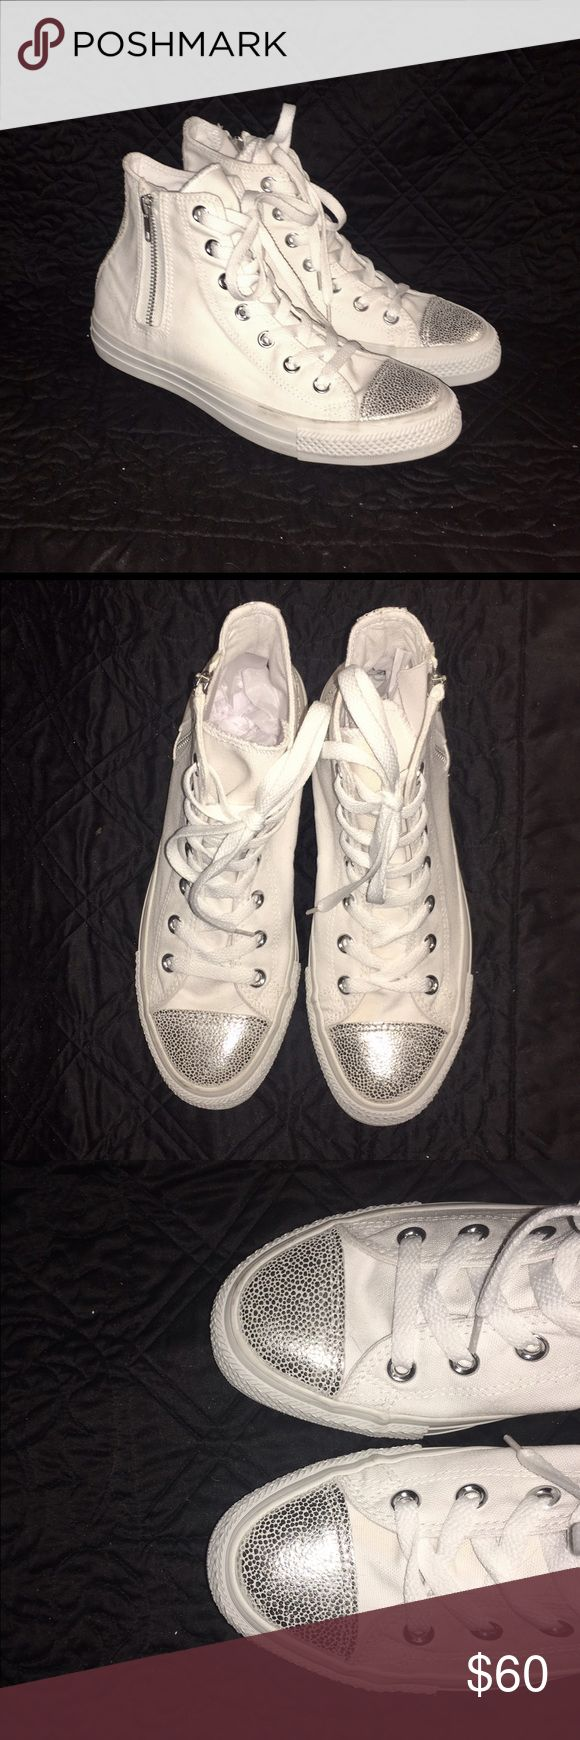 Converse Zip-Up High Tops w/ Silver Accents 🌊 Brand-new with tags. Converse All Star Sneakers w/ zippers on sides. Never worn & in perfect condition. Faux pebbled leather accents in front & back of sneaker. 🦄 Shoes Sneakers